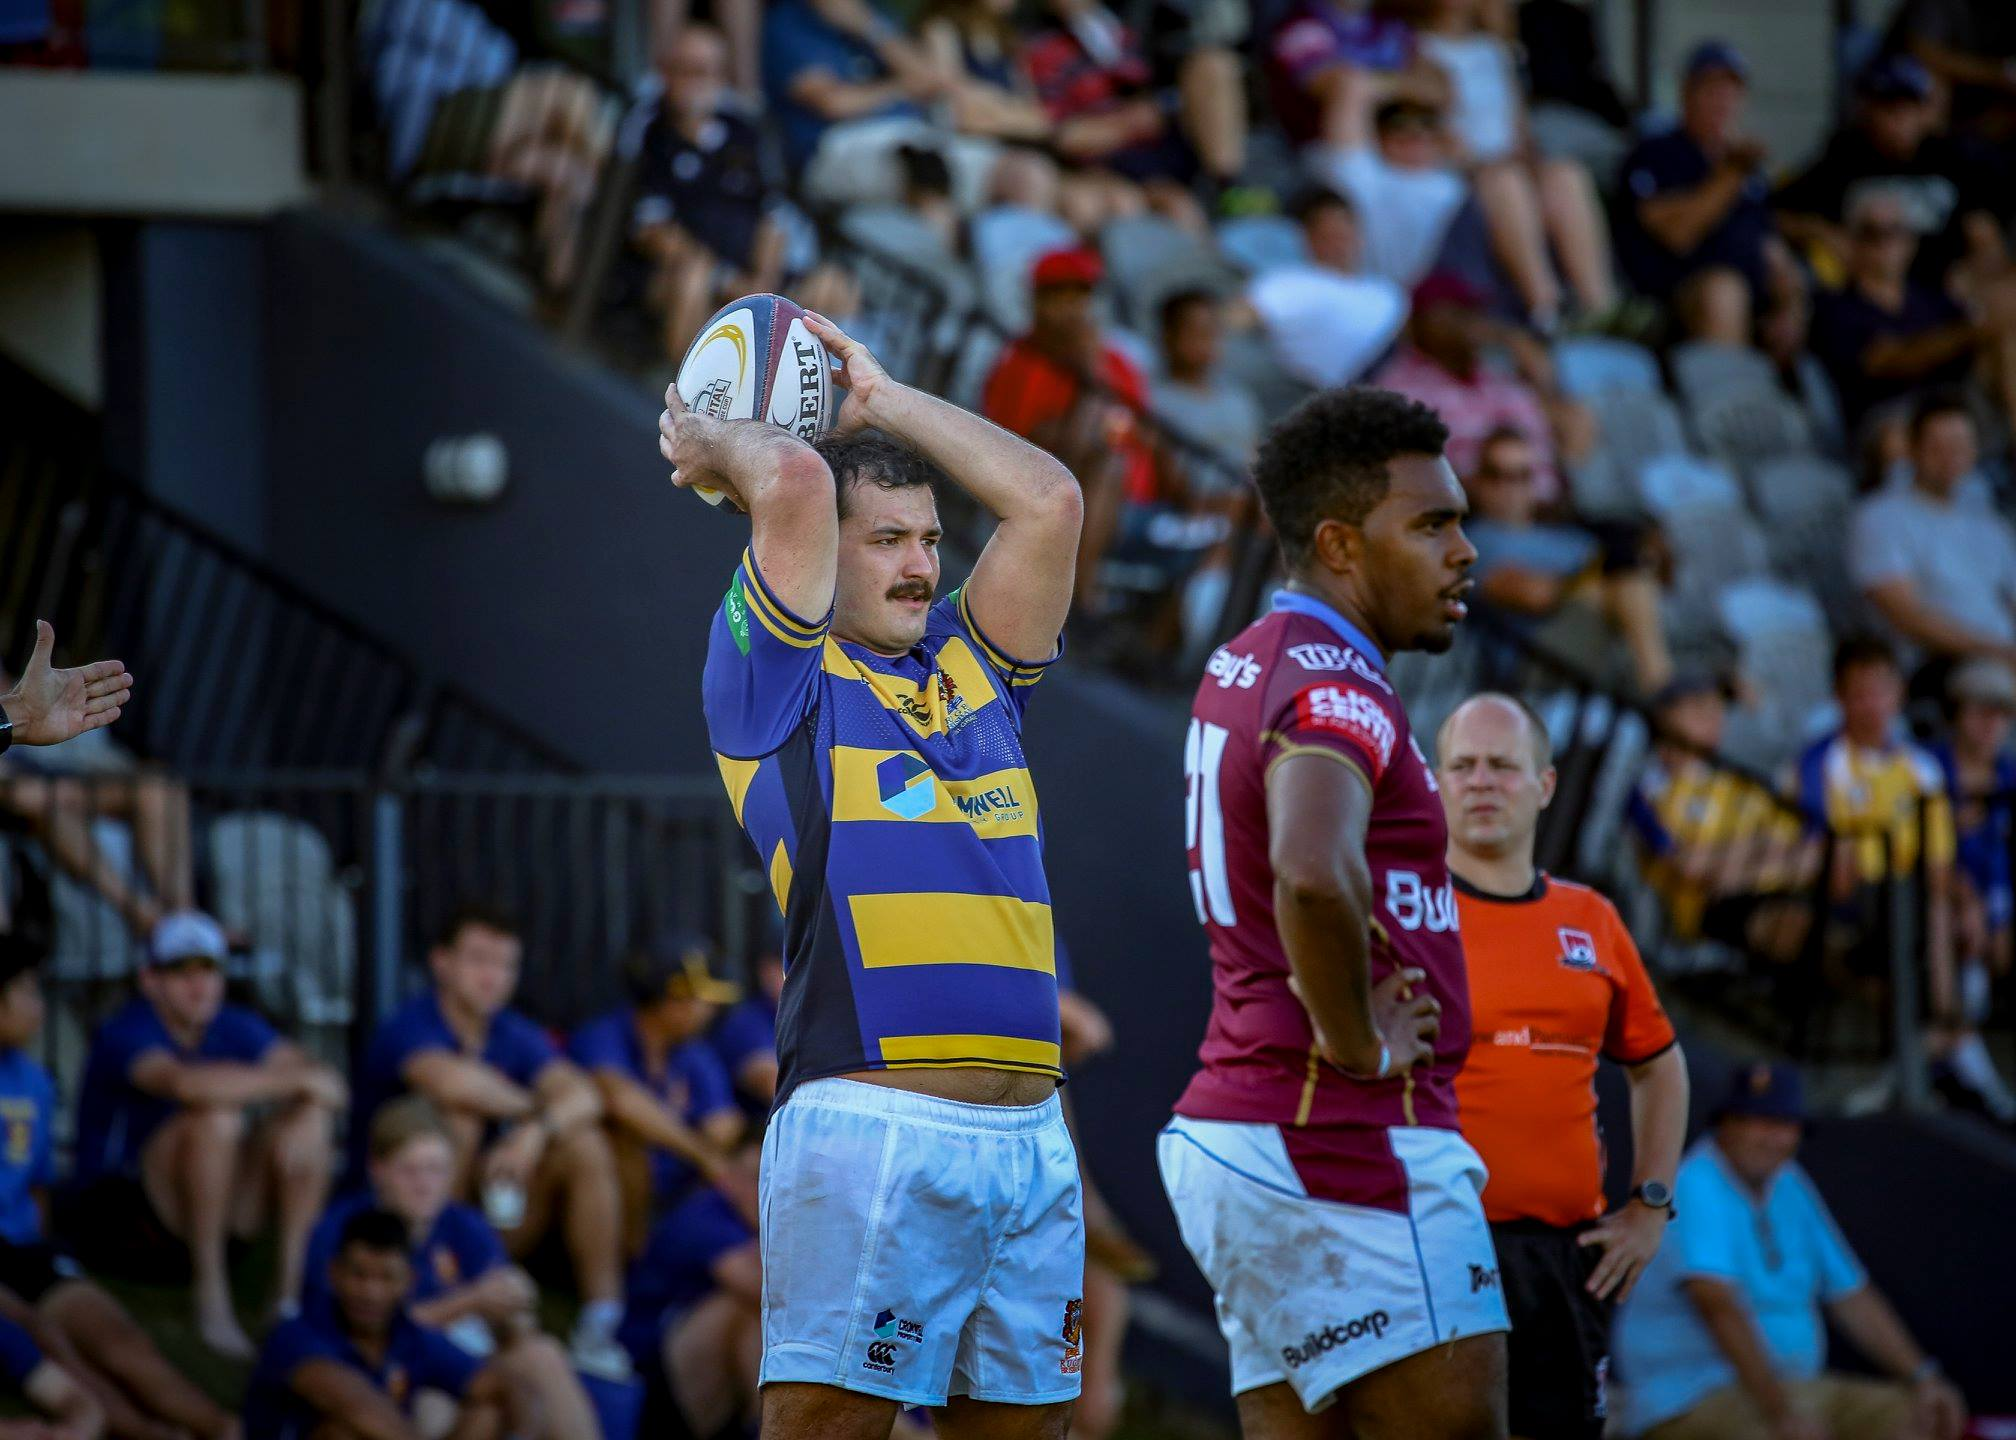 Qld premier rugby betting online army navy betting